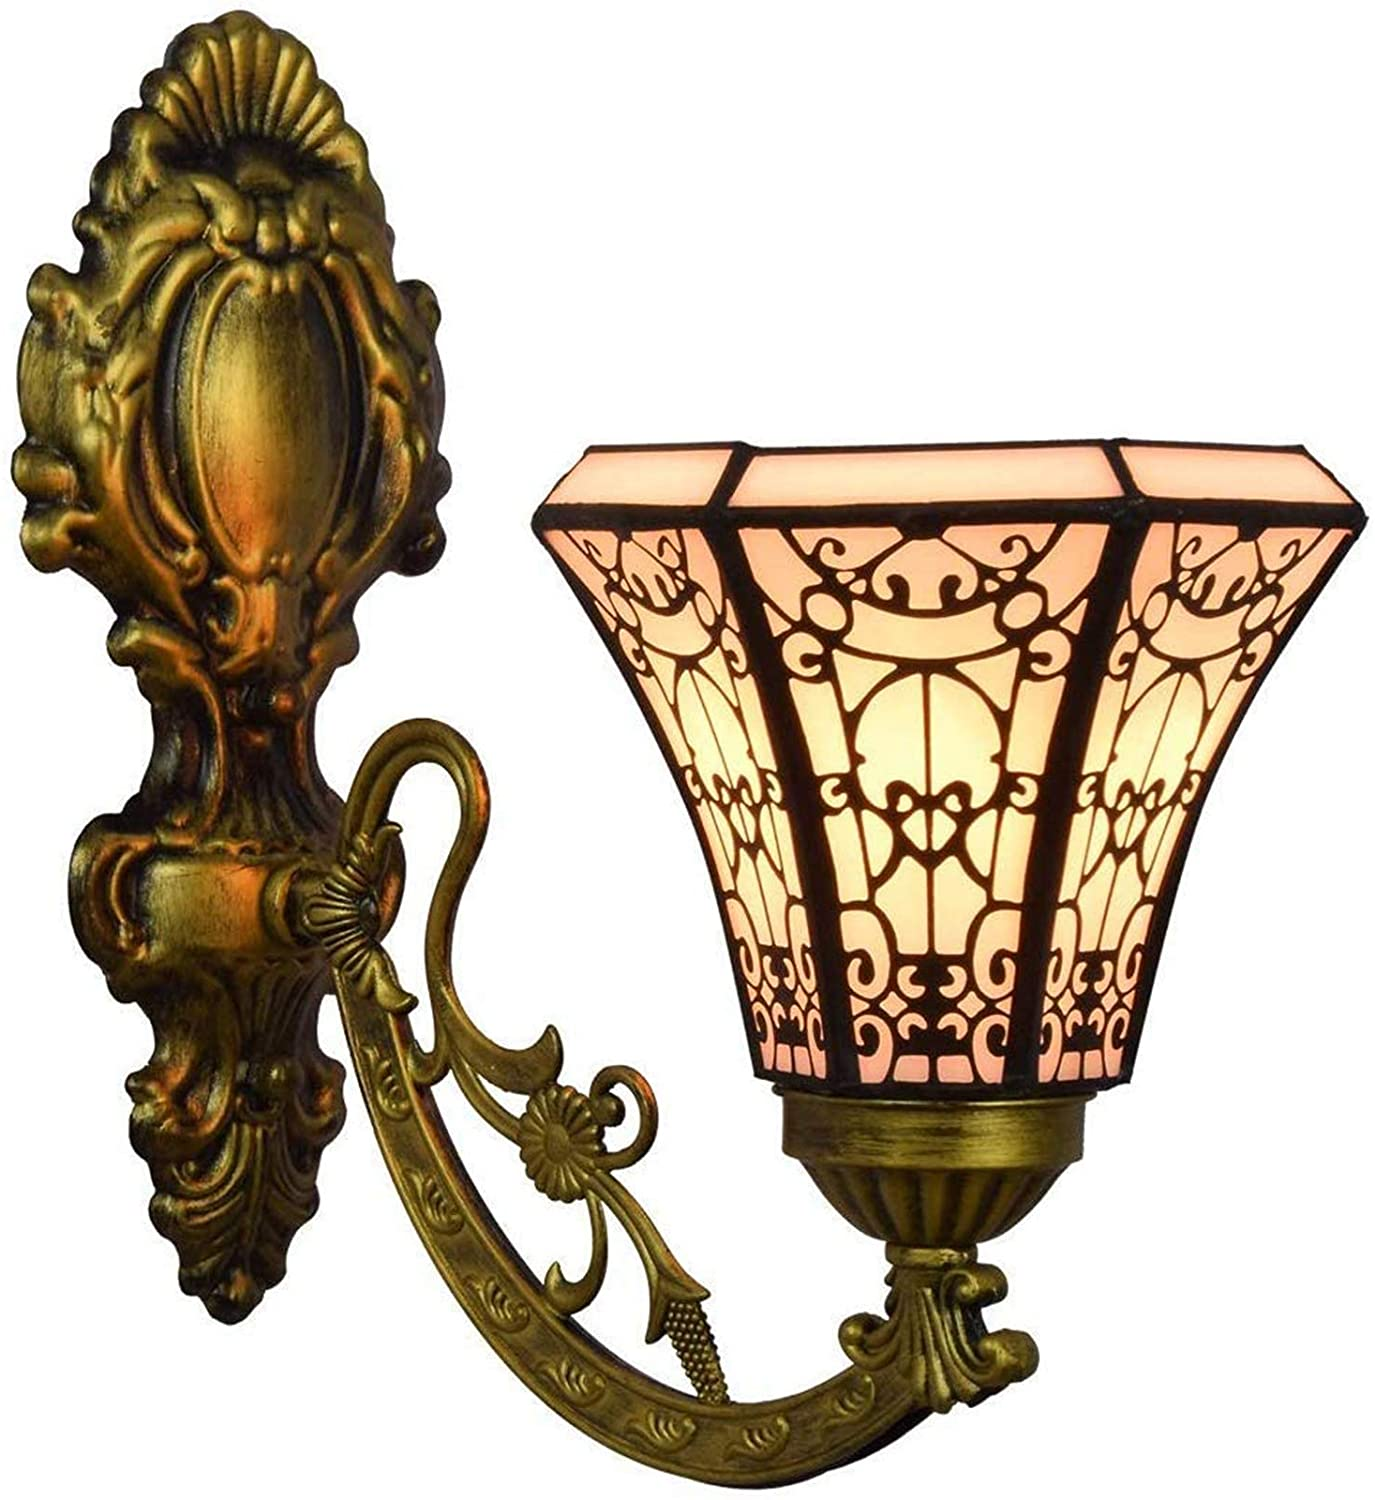 DSFHKUYB Wall Lamp Stained Glass Retro Glazed Wall Lamp Bedside Lamp Aisle Lights